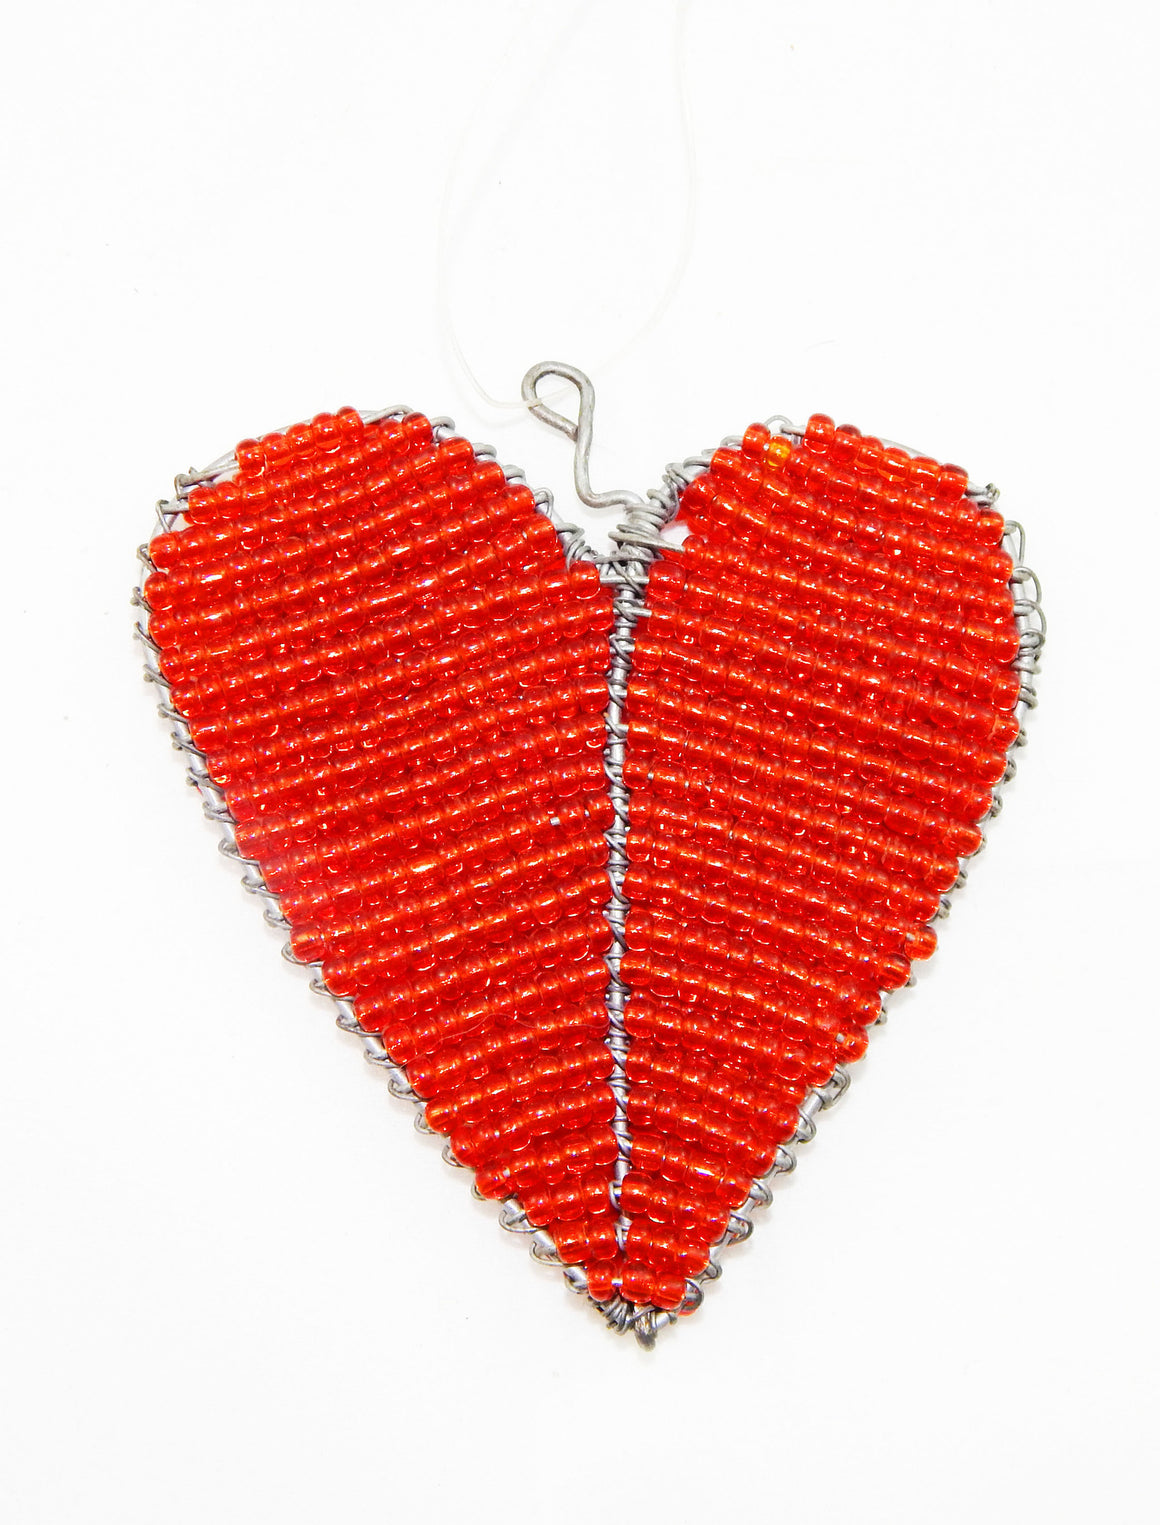 Maasai Heart Ornaments